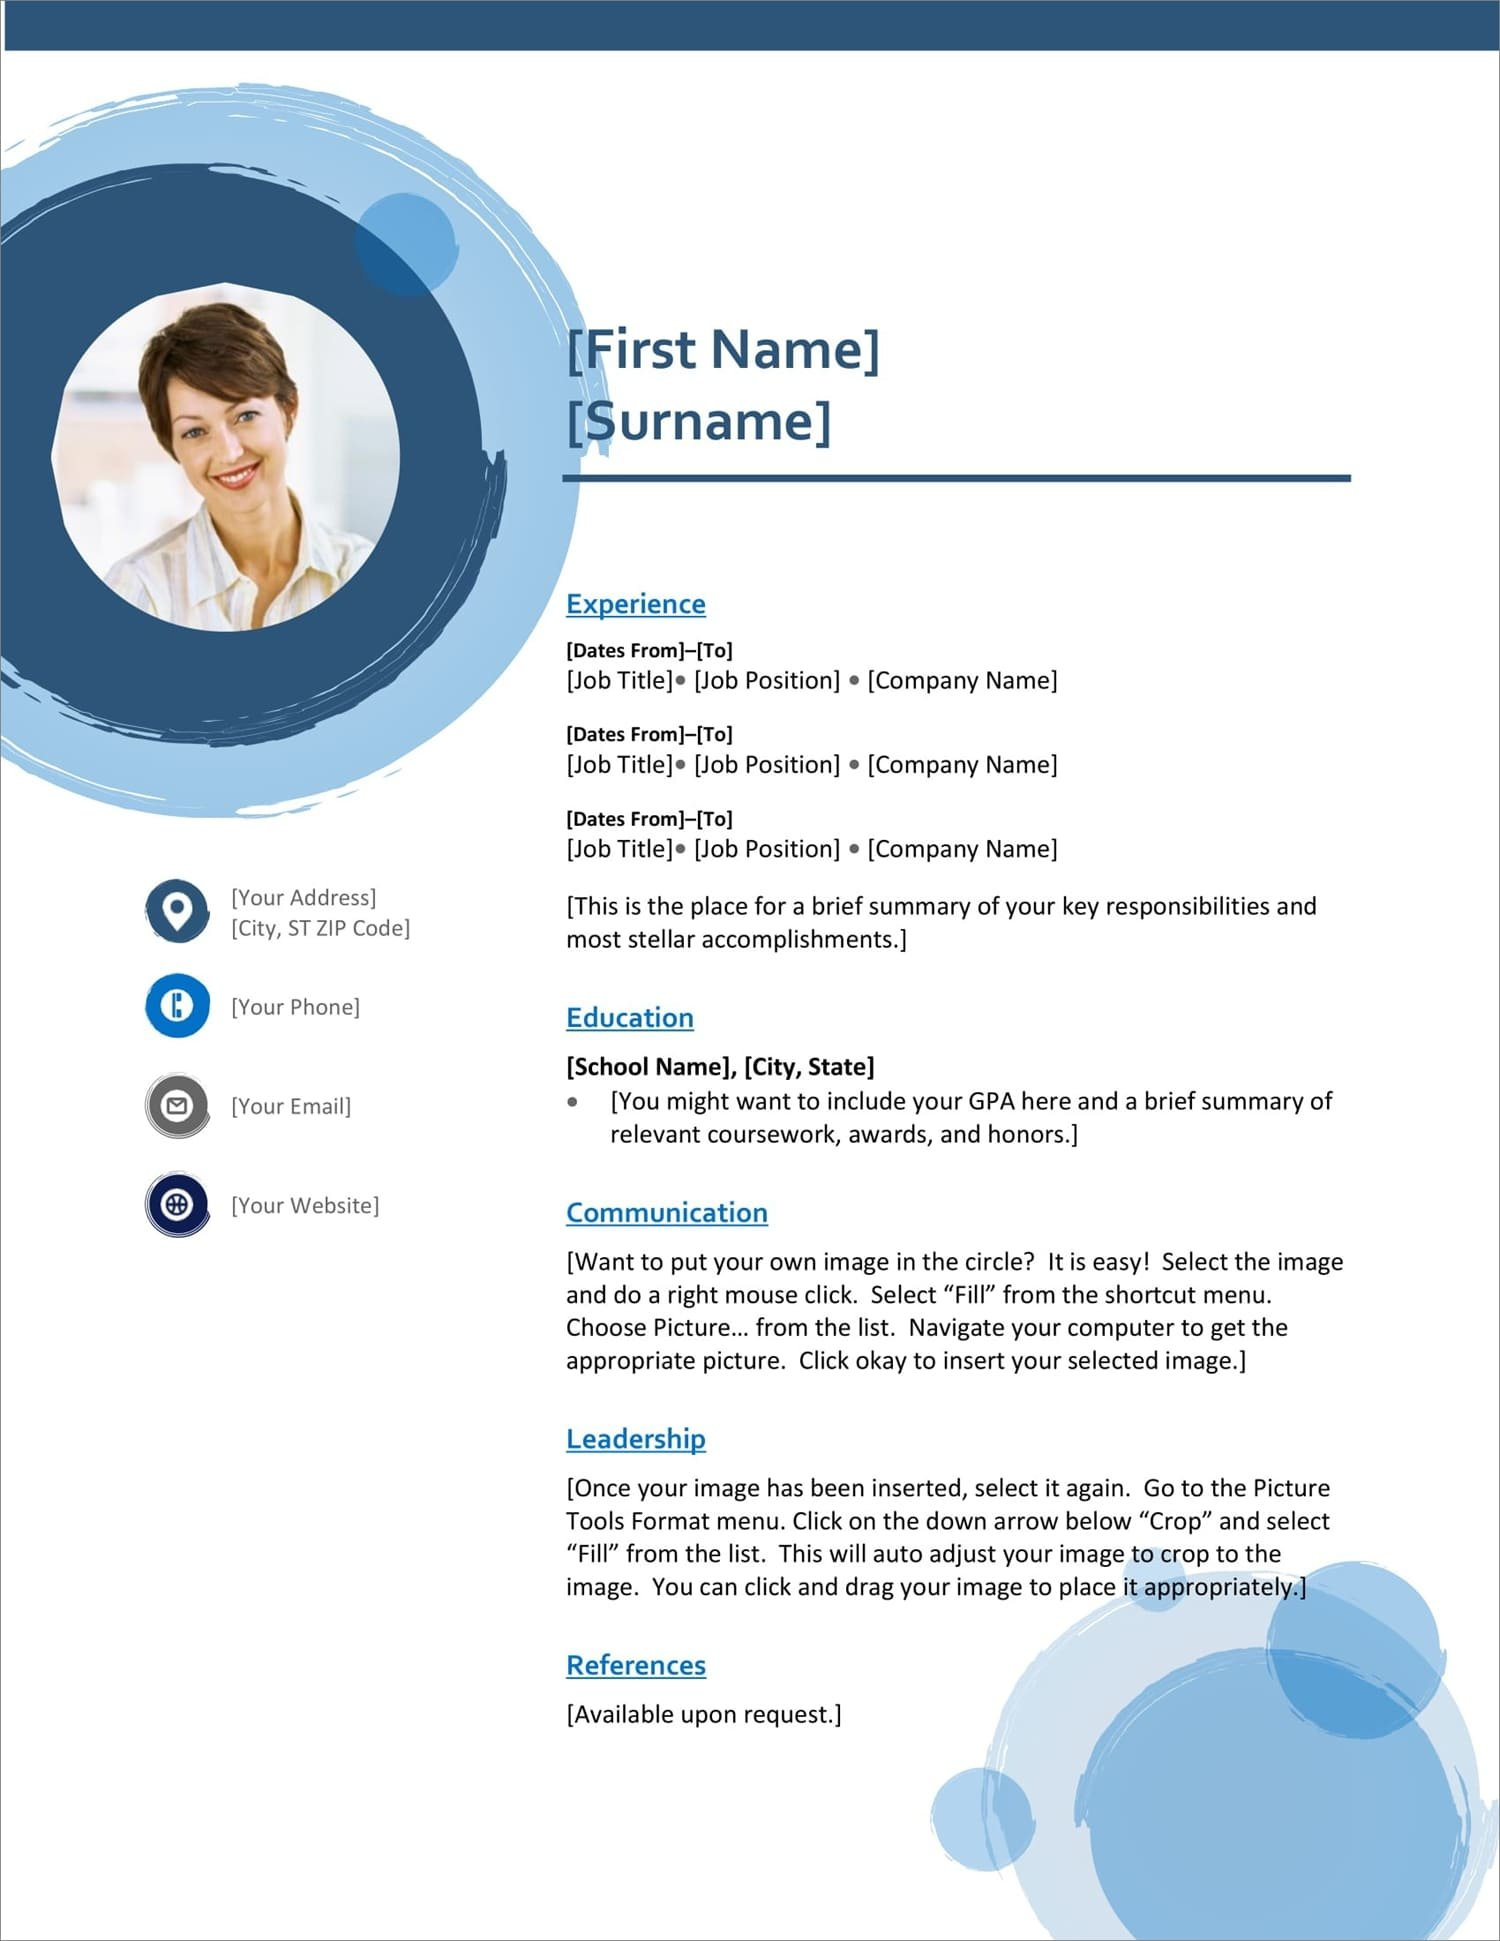 Jobscan's free microsoft word compatible resume templates feature sleek, minimalist designs and are formatted for the applicant tracking systems that virtually all major companies use. 17 Free Resume Templates For 2021 To Download Now